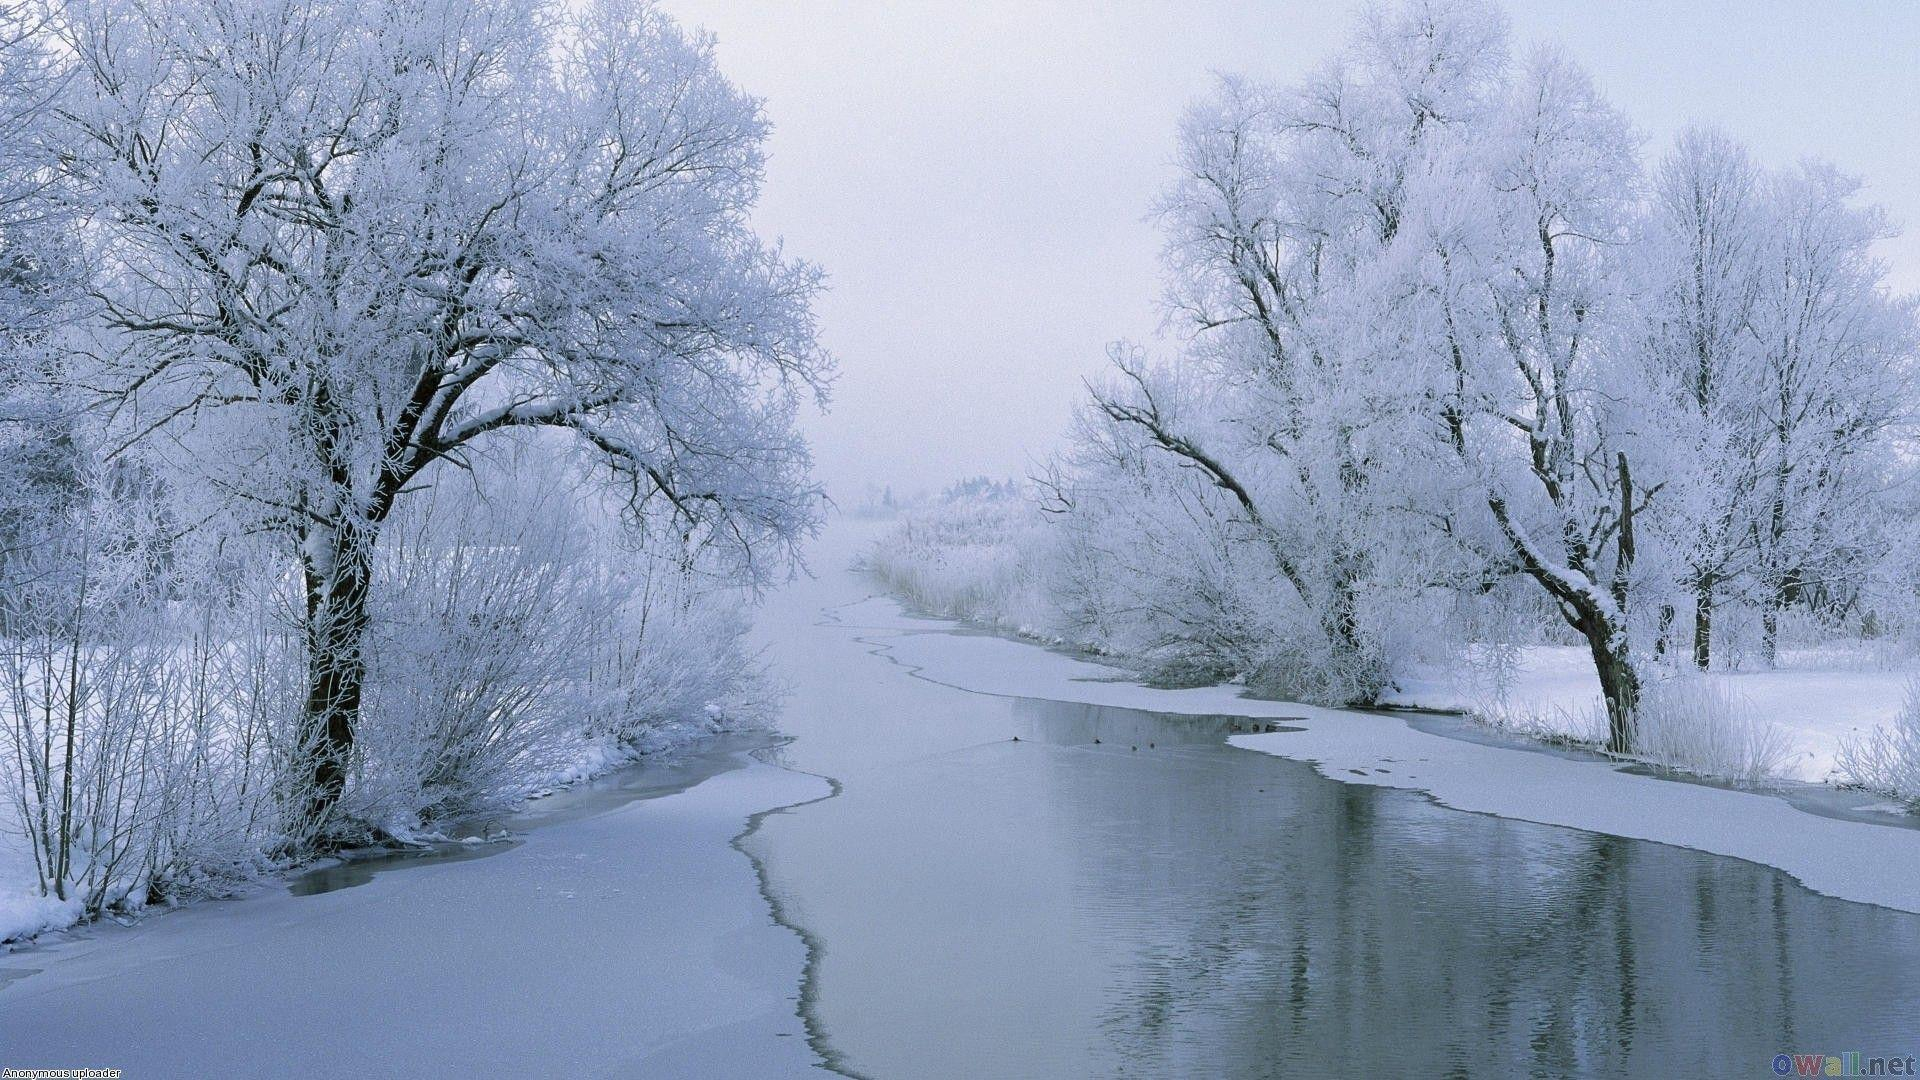 Winter Wallpaper 31 18442 HD Wallpaper | Wallroro.